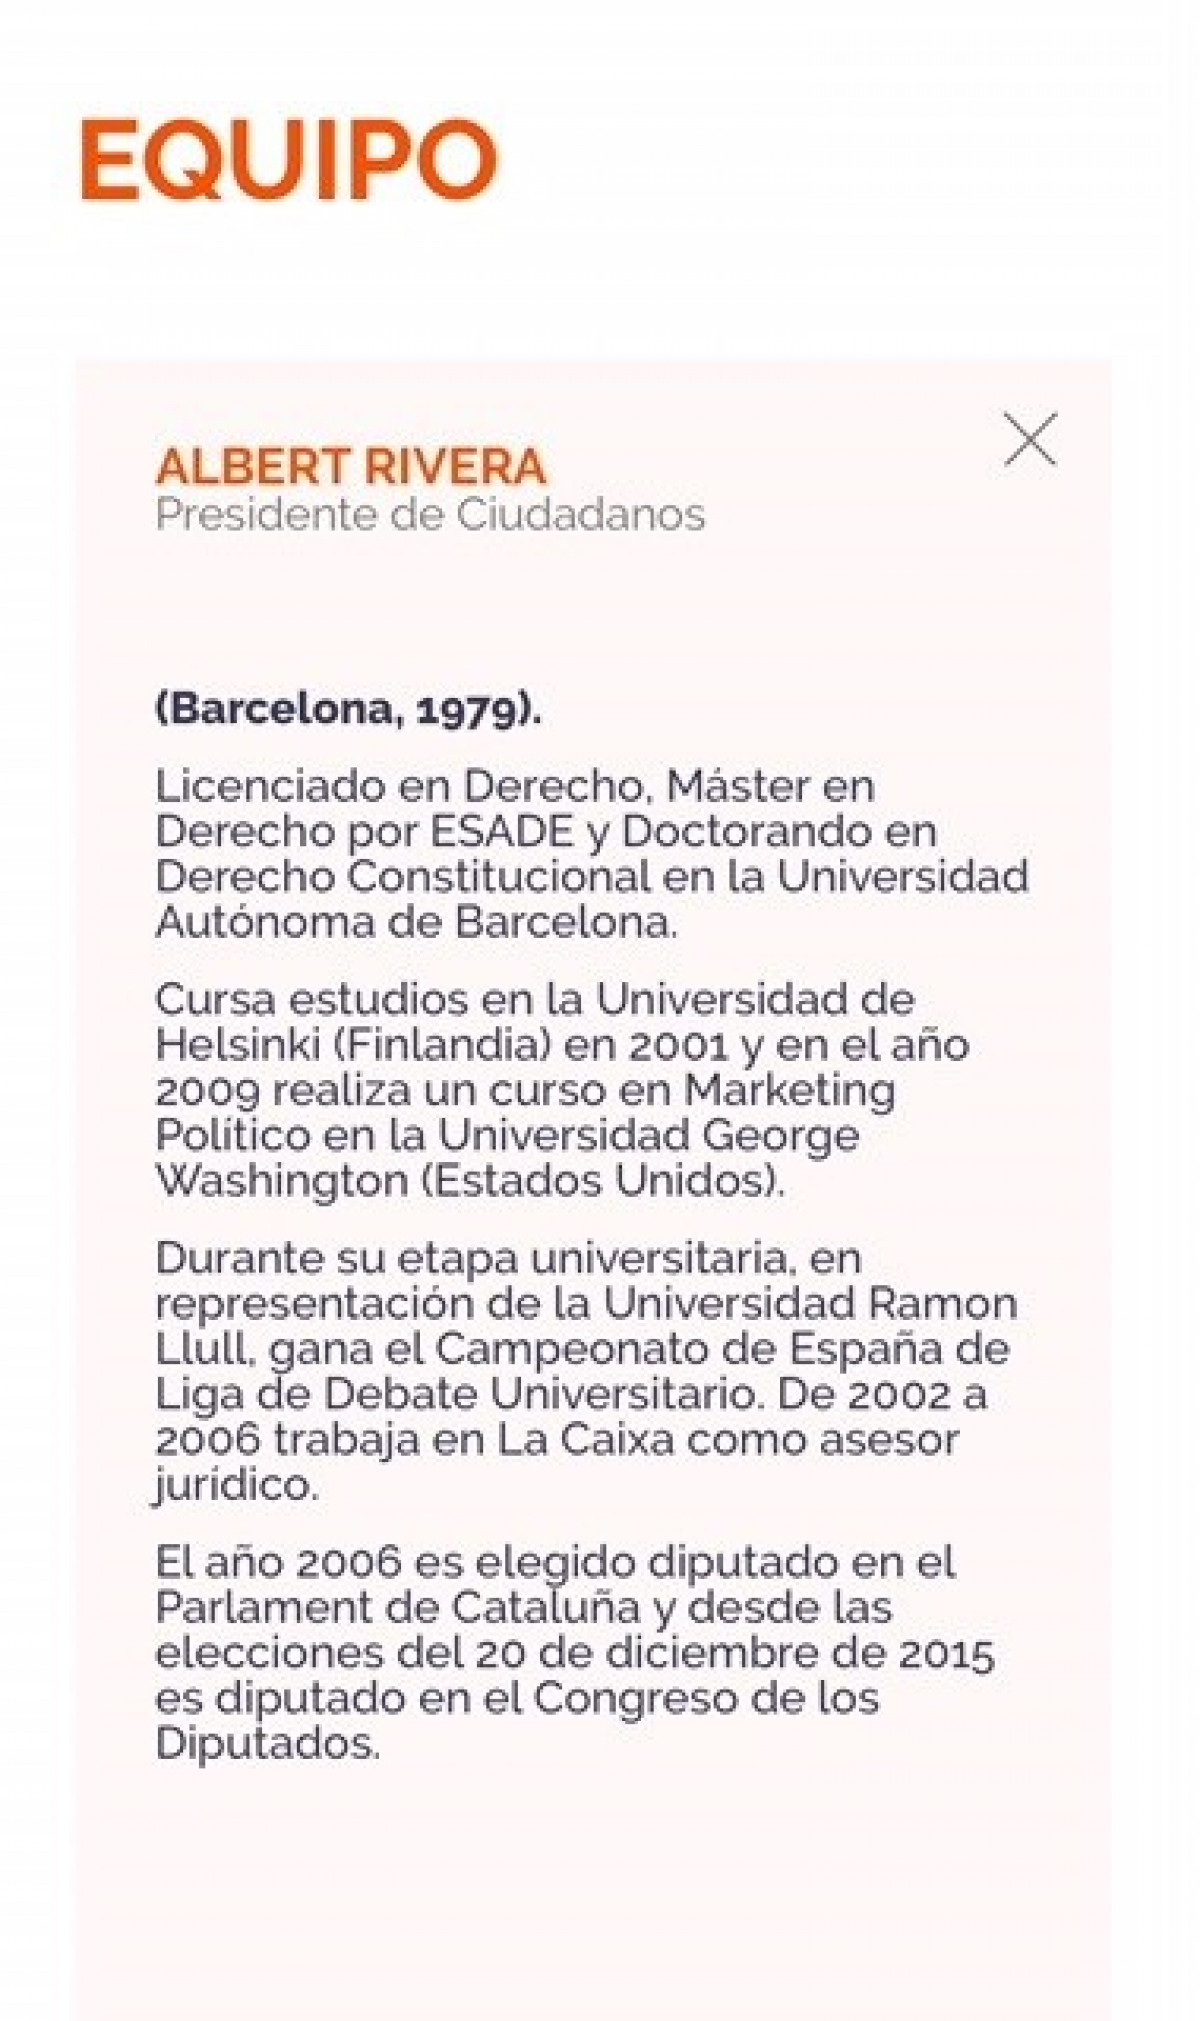 Cv albert rivera